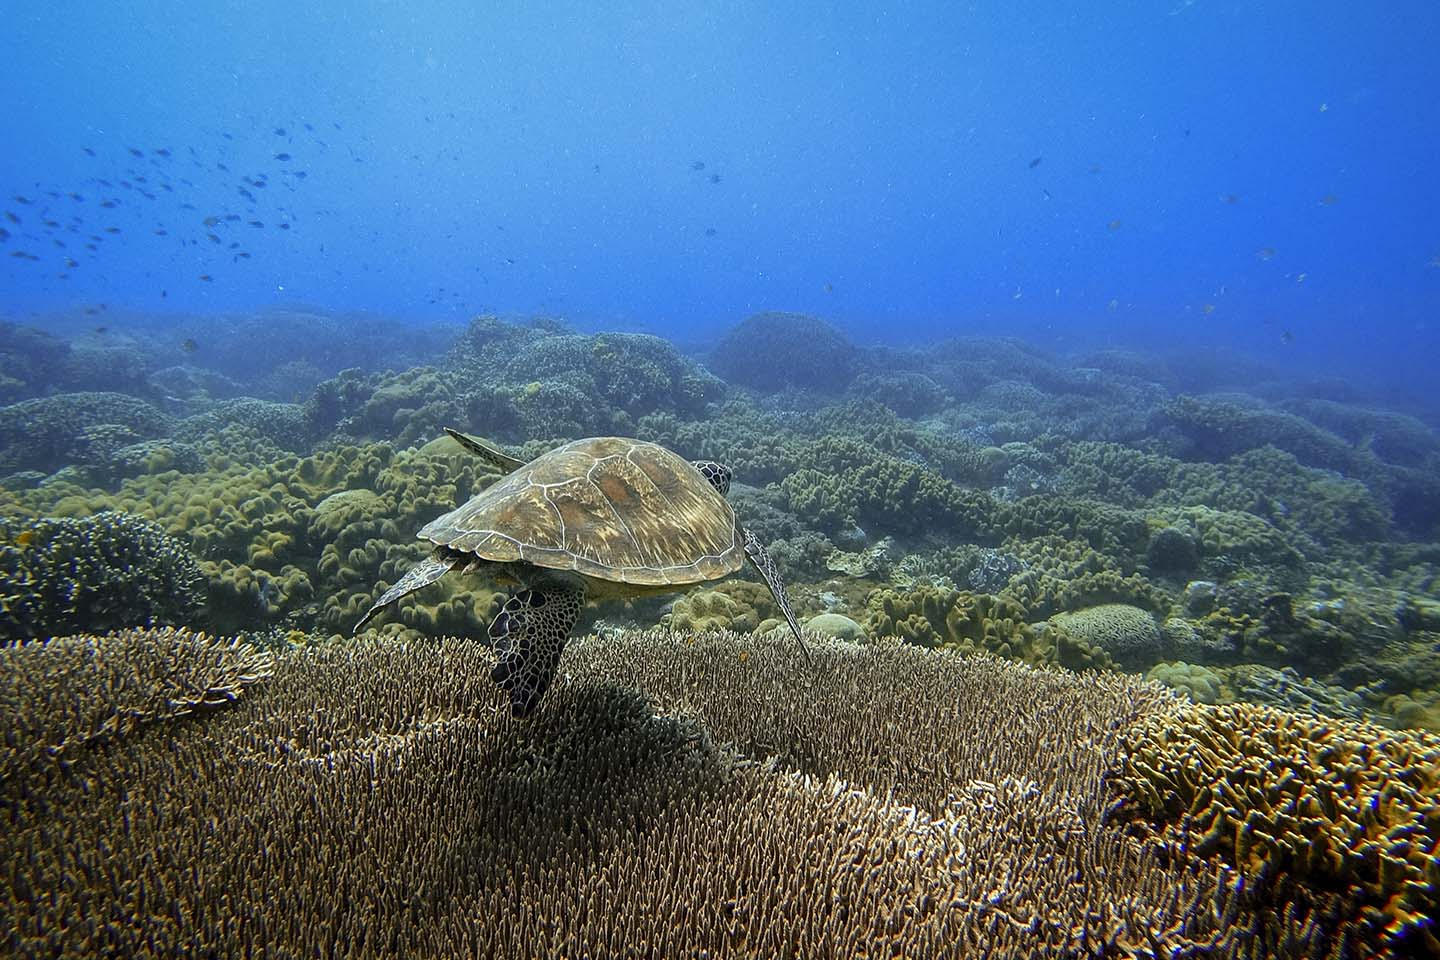 Apo Island is home to many green and hawksbill turtles. They are often seen chilling, swimming and eating around the island, making it a huge attraction for many scuba divers and snorkelers.